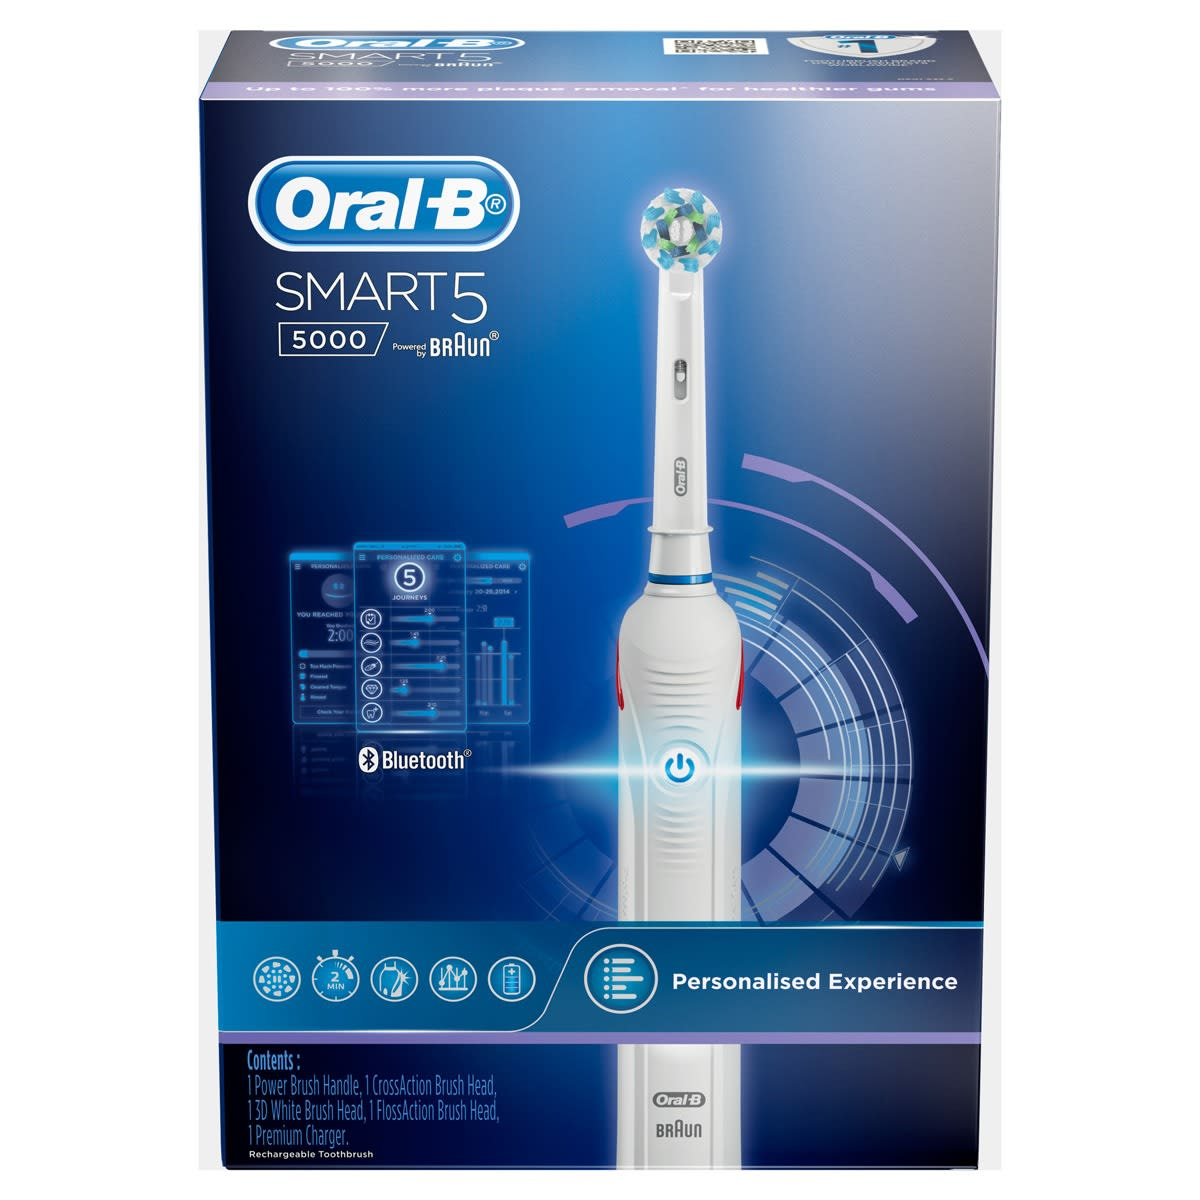 Smart 5 5000 Electric Toothbrush - Box Front